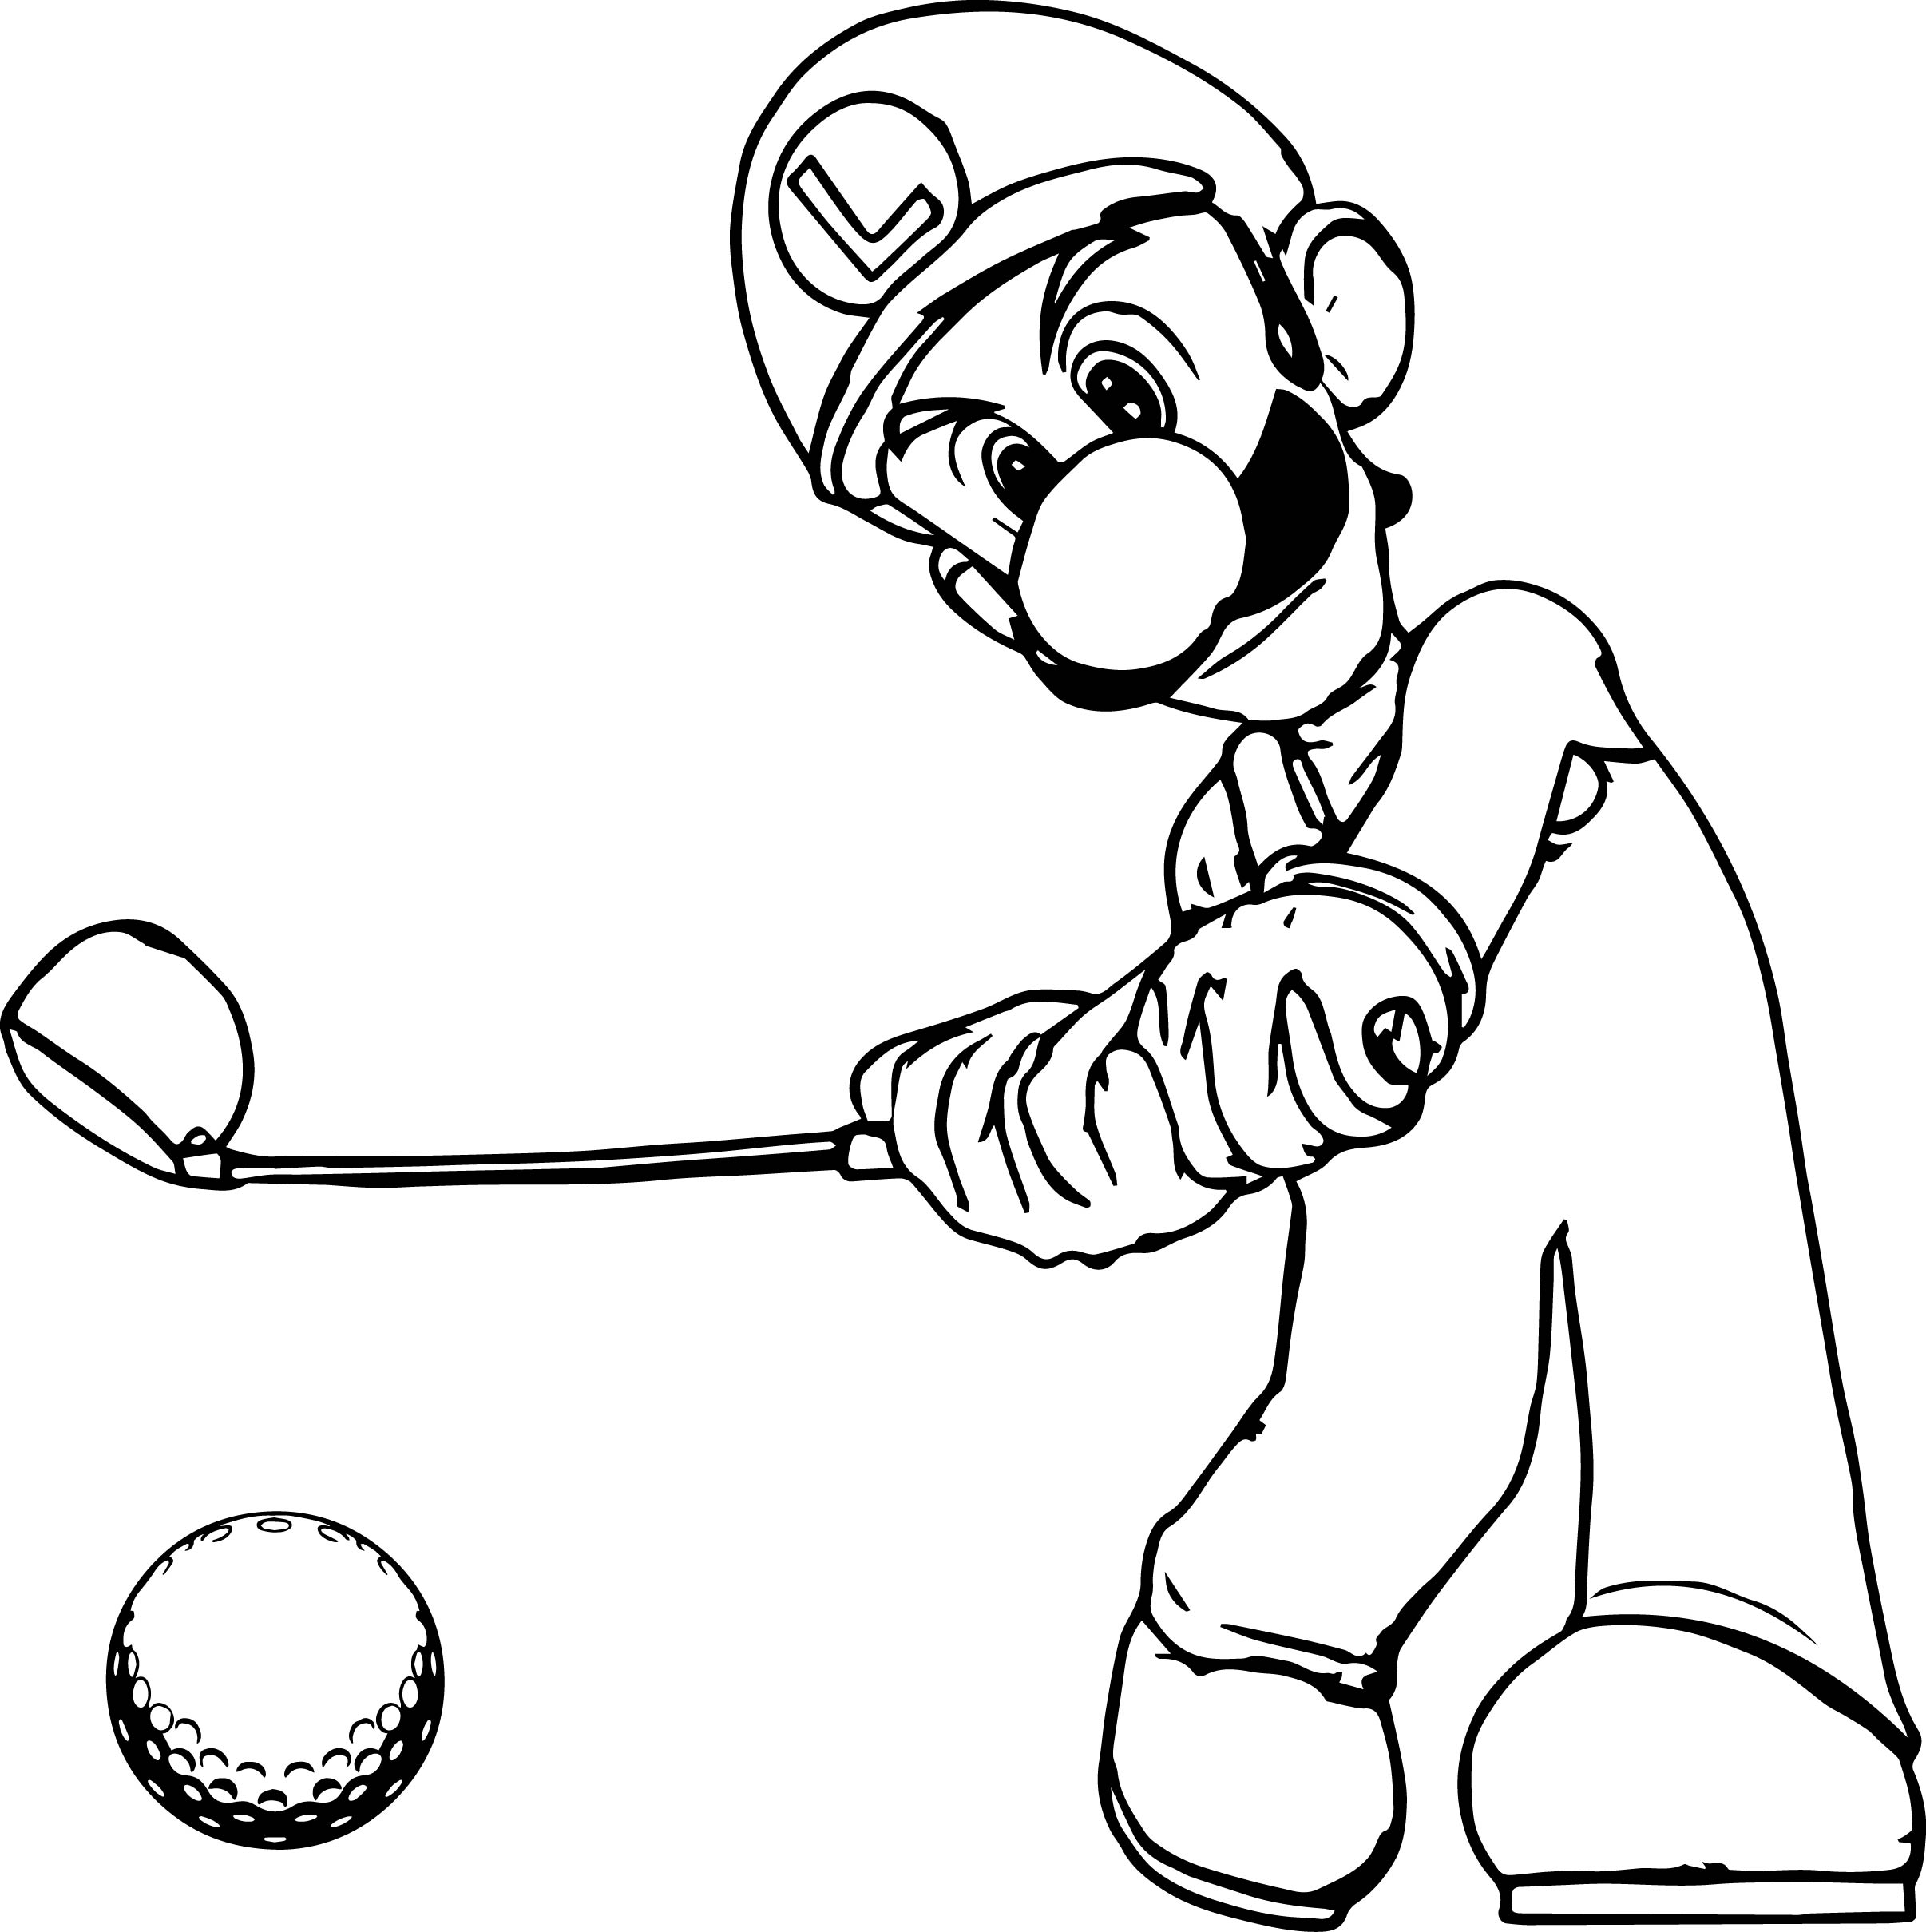 18 golf pictures to print and color golf coloring 17